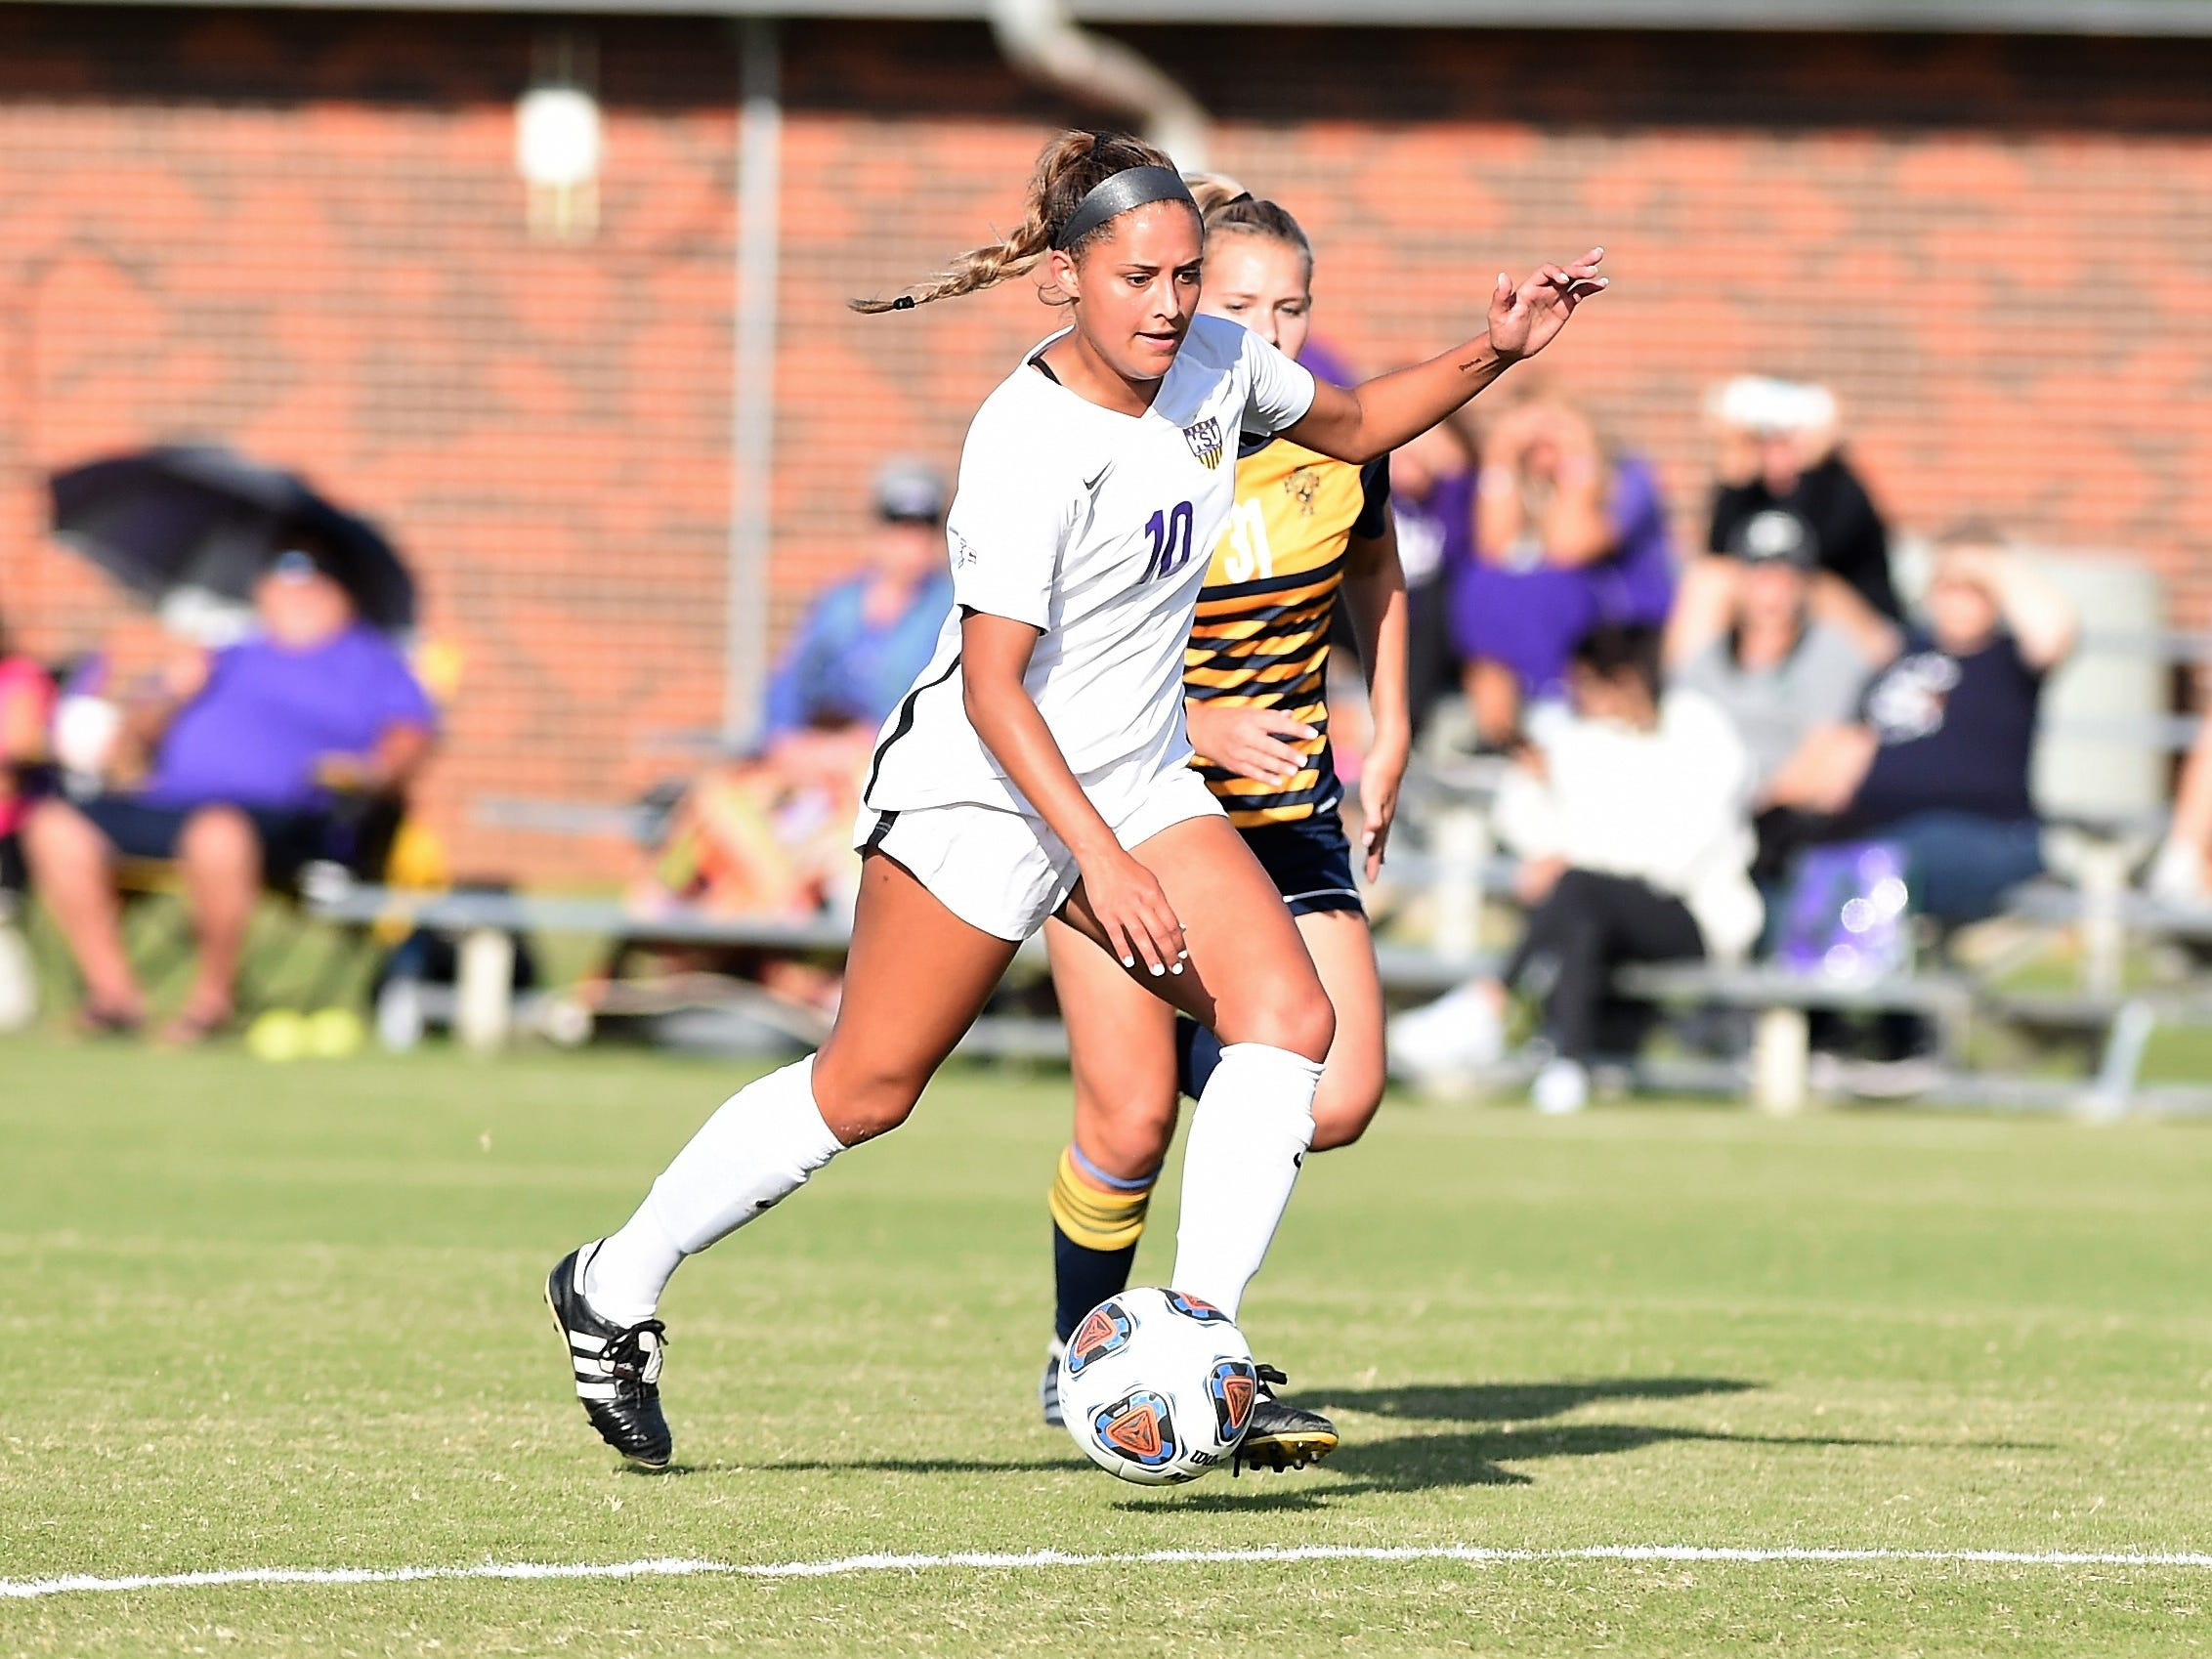 Hardin-Simmons forward Randie Dennison (10) carries the ball into the box against Howard Payne at the HSU Soccer Complex on Thursday, Oct. 11, 2018. The Cowgirls won 4-1.